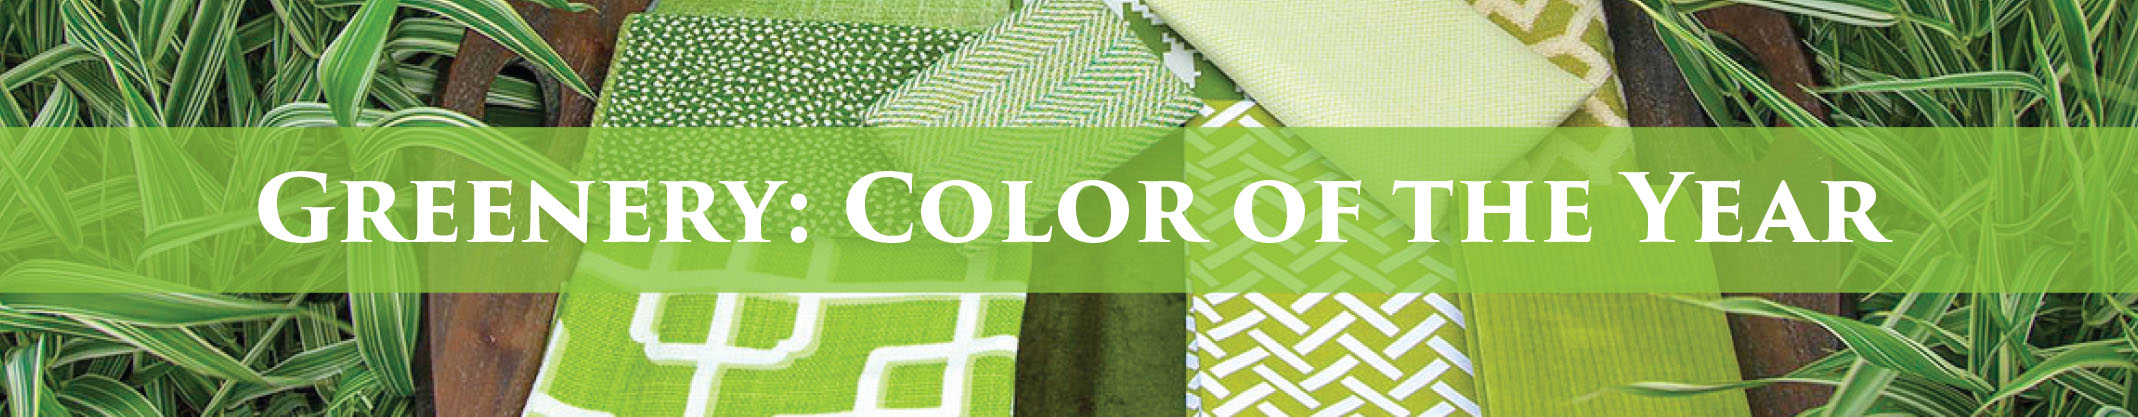 Greenery: Color of the Year